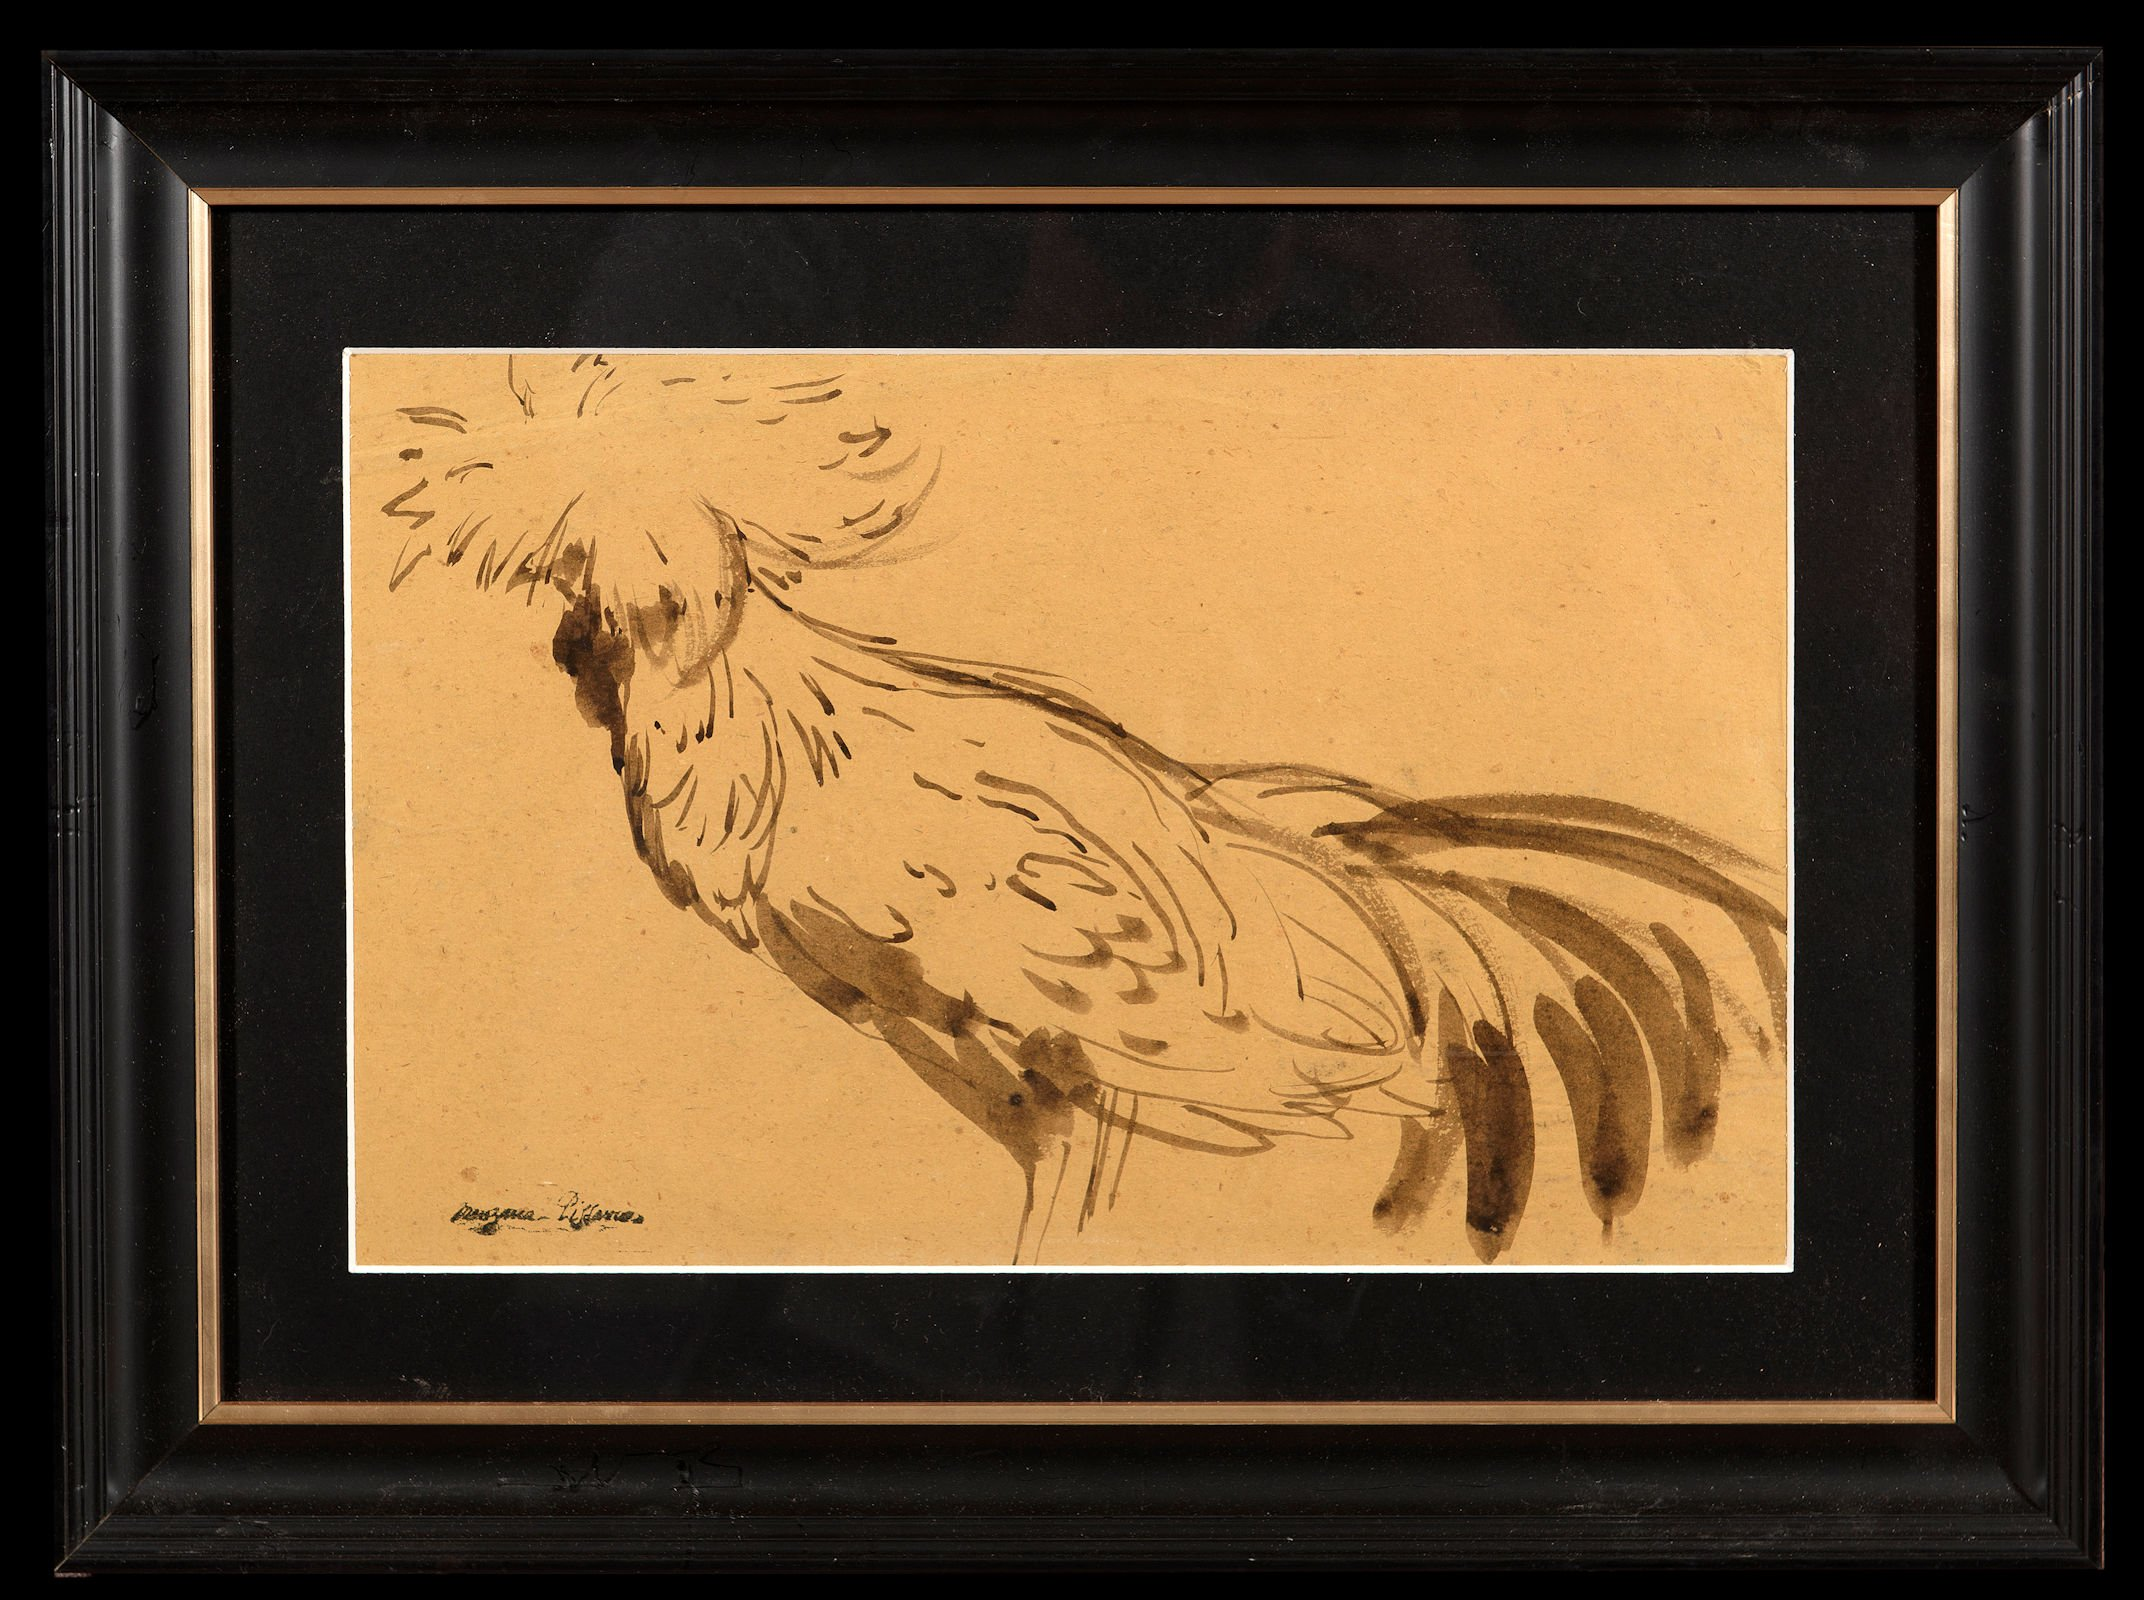 Chicken drawing from side view